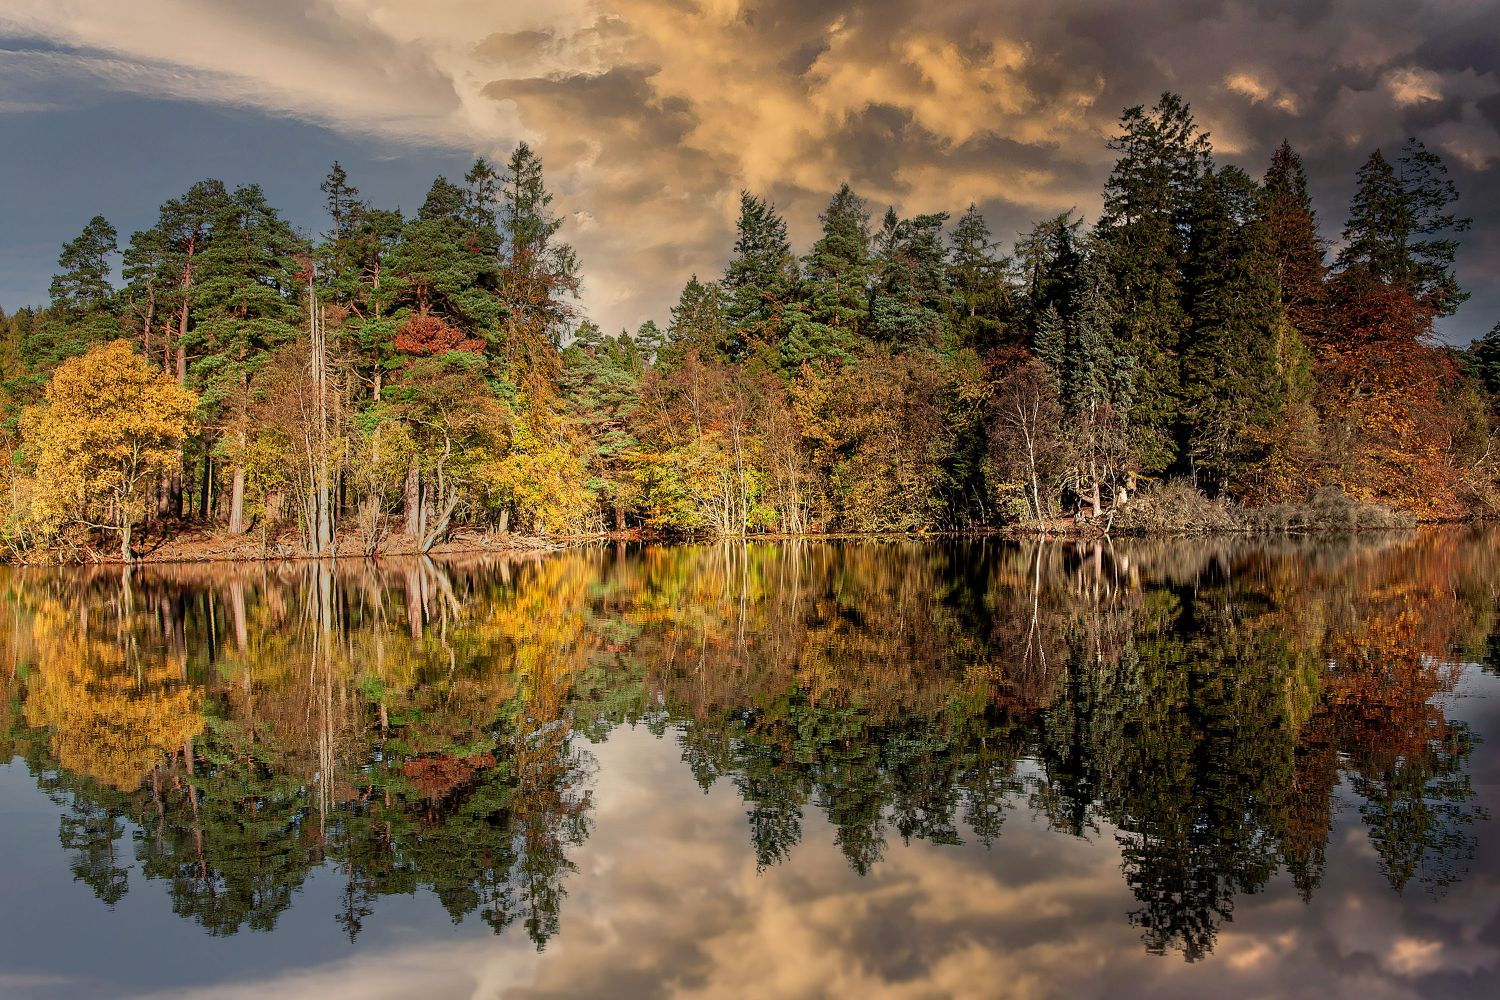 Tarn Hows under Stormy Skies by Martin Lawrence